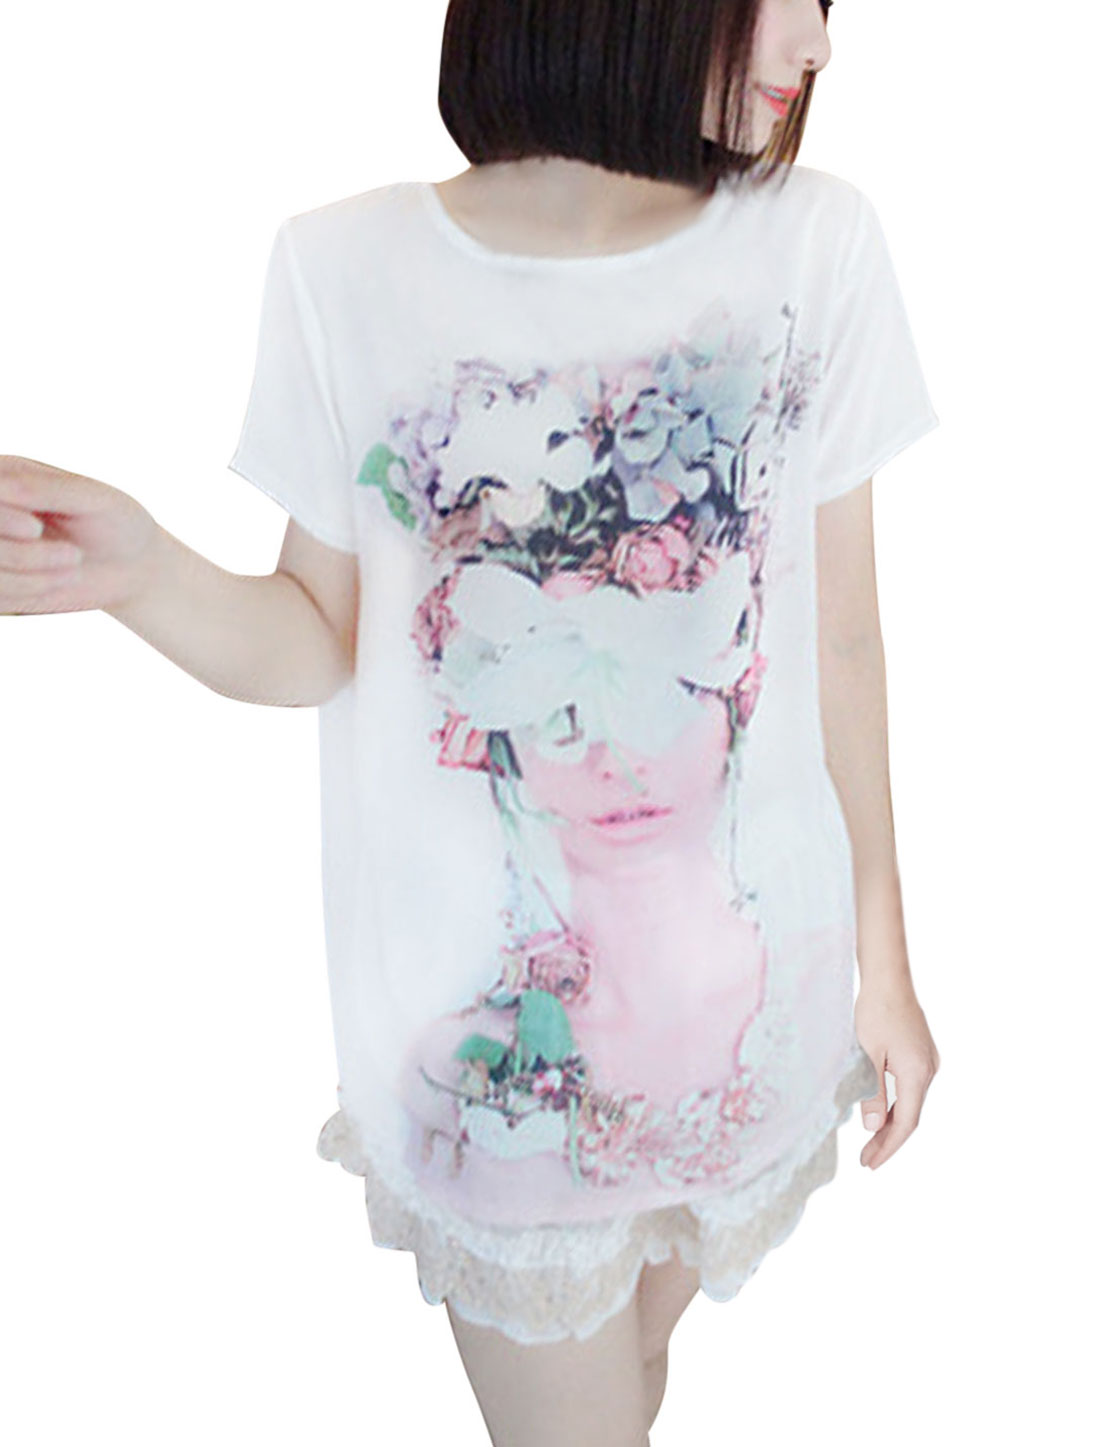 Leisure Round Neck Portrait Pattern Chiffon Shirt for Lady White XS